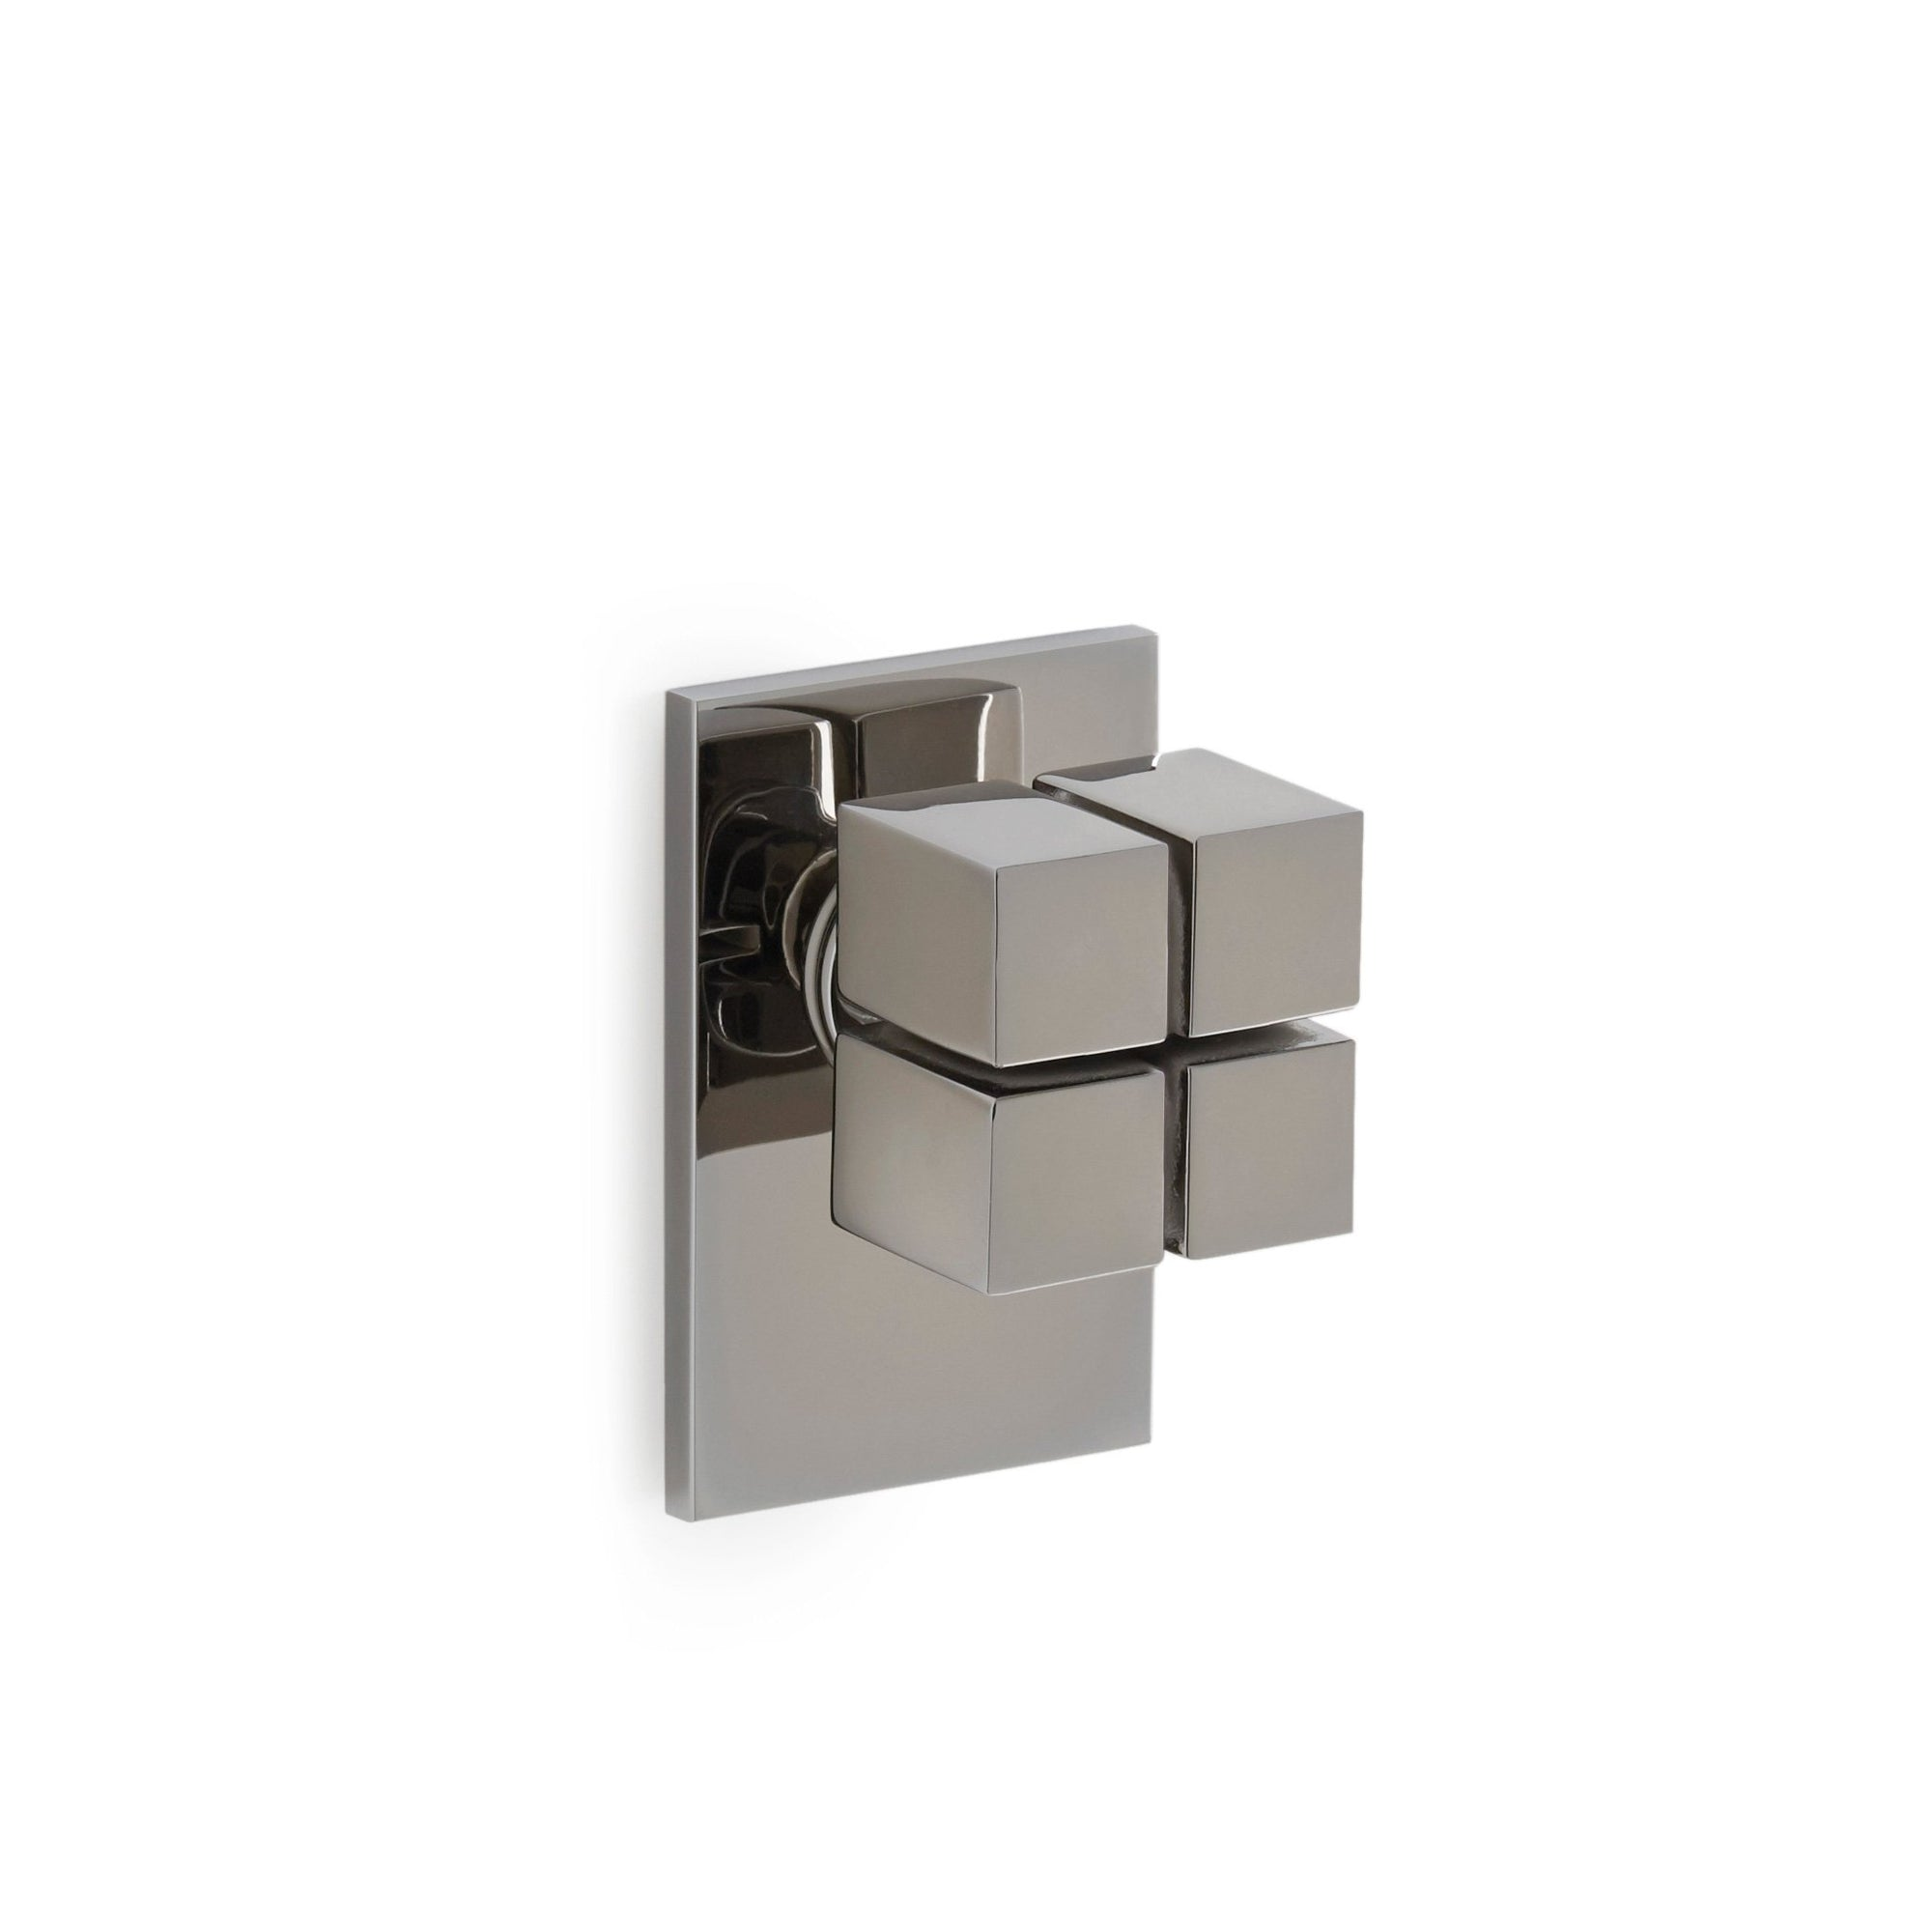 2003DOR-CP Sherle Wagner International Quad Door Knob in Polished Chrome metal finish